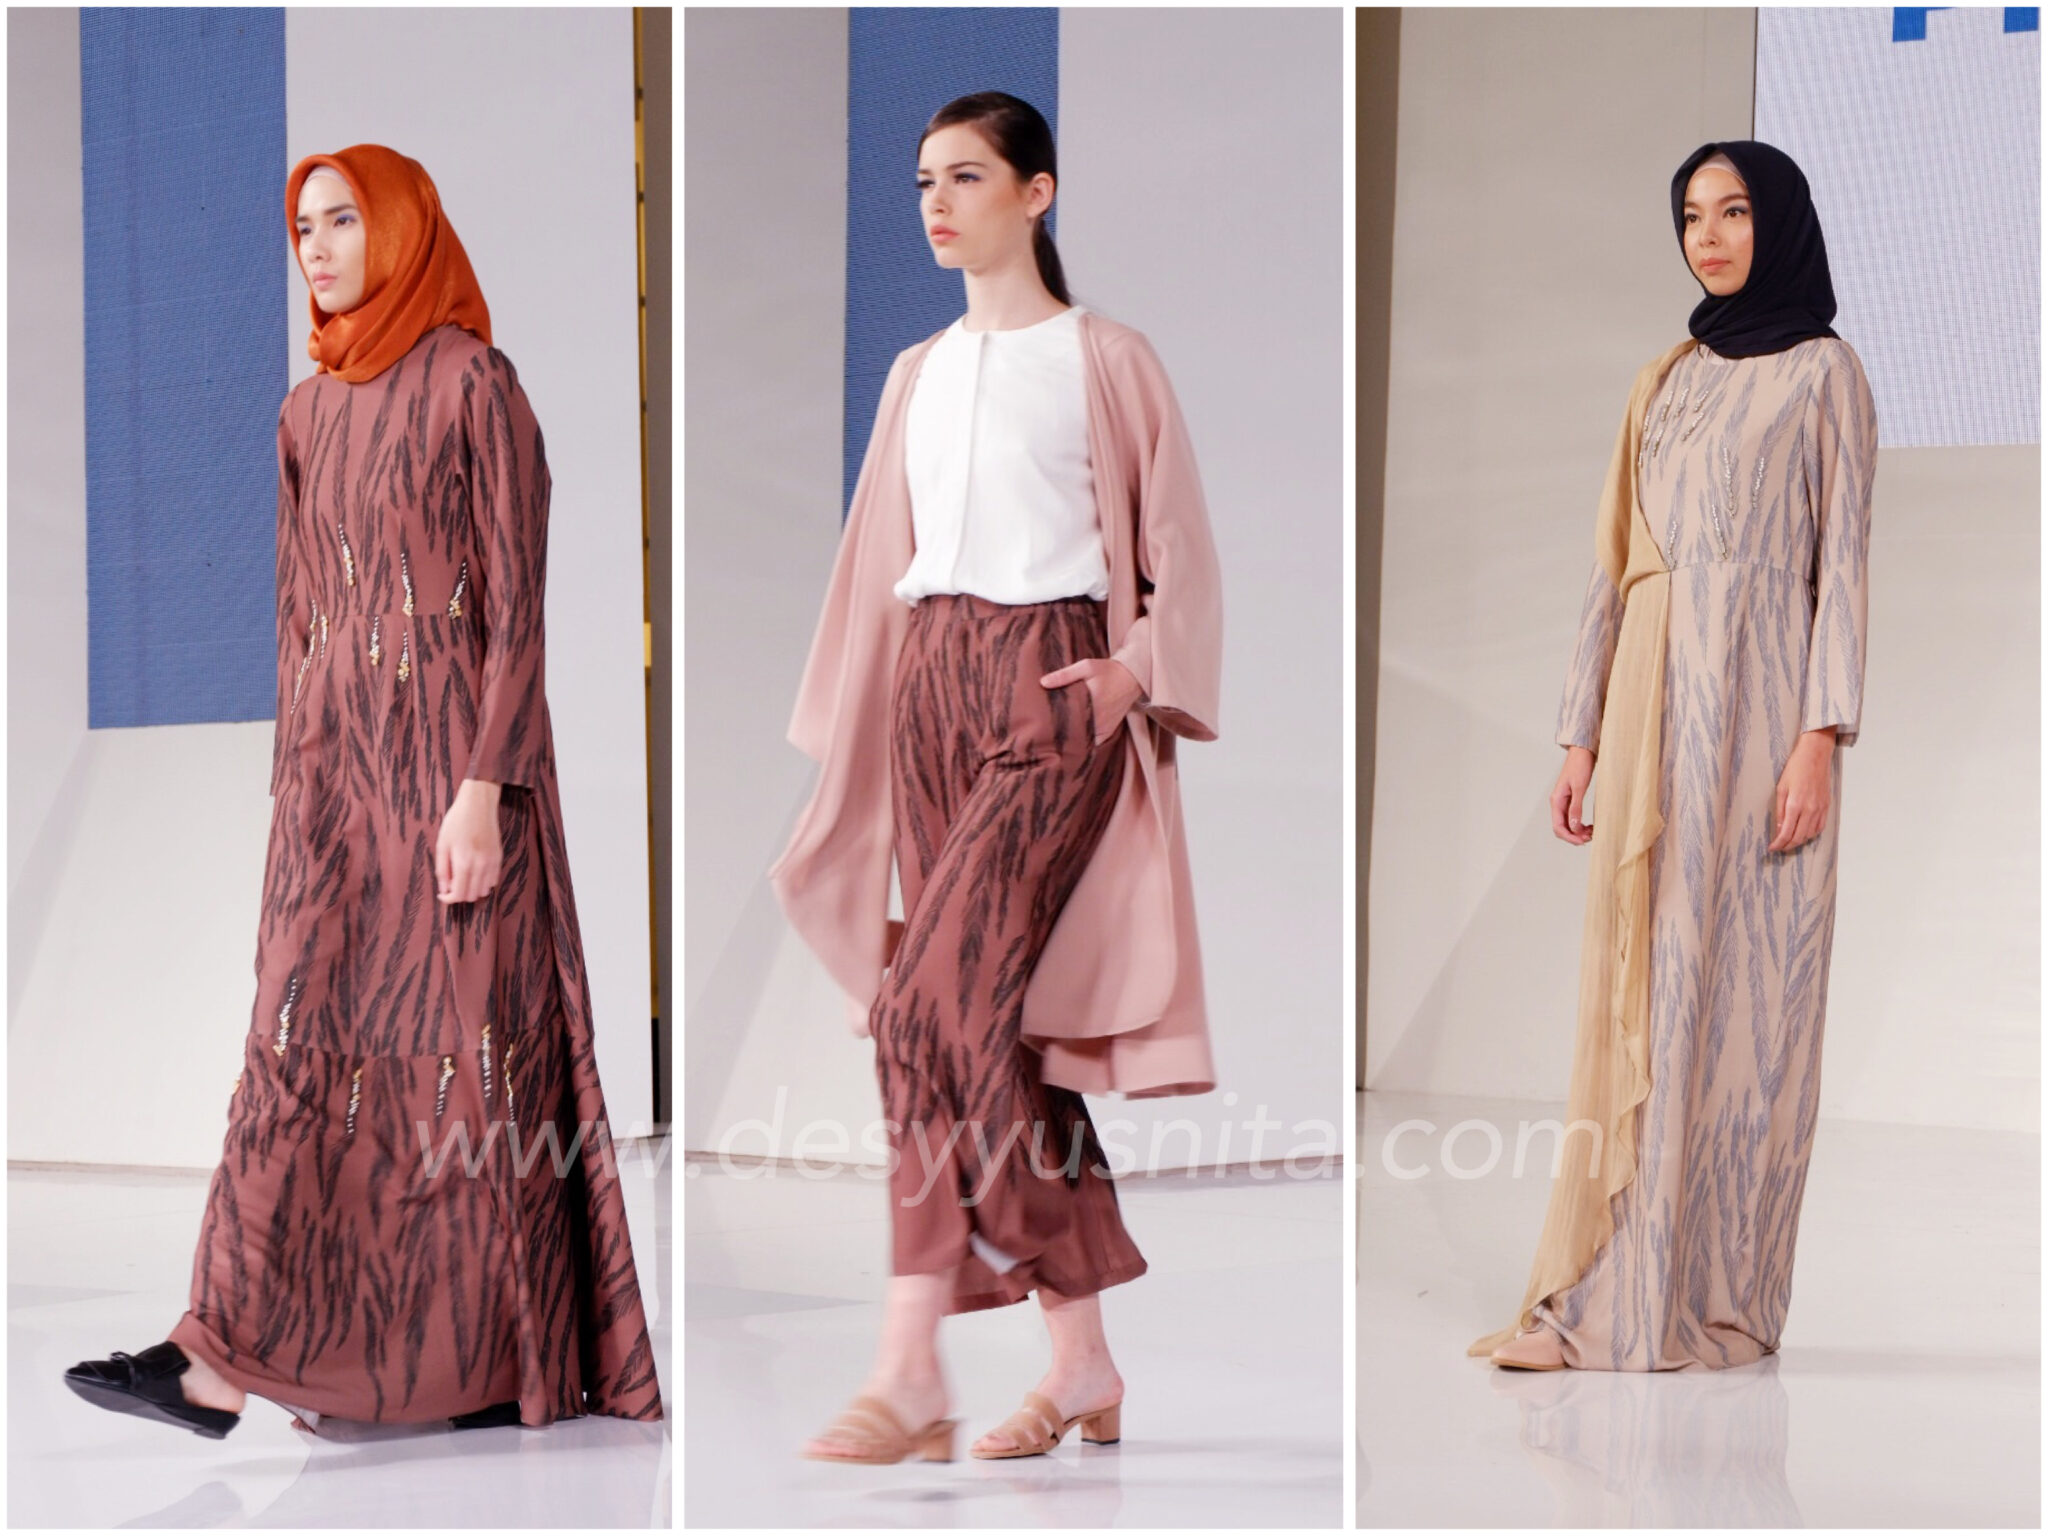 Philips Indonesia, Setrika Philips, Jakarta Fashion eek 2018, JFW, Jakarta Fashion Week, Fashion Show, Kami, Brand Local, Lifestyle,